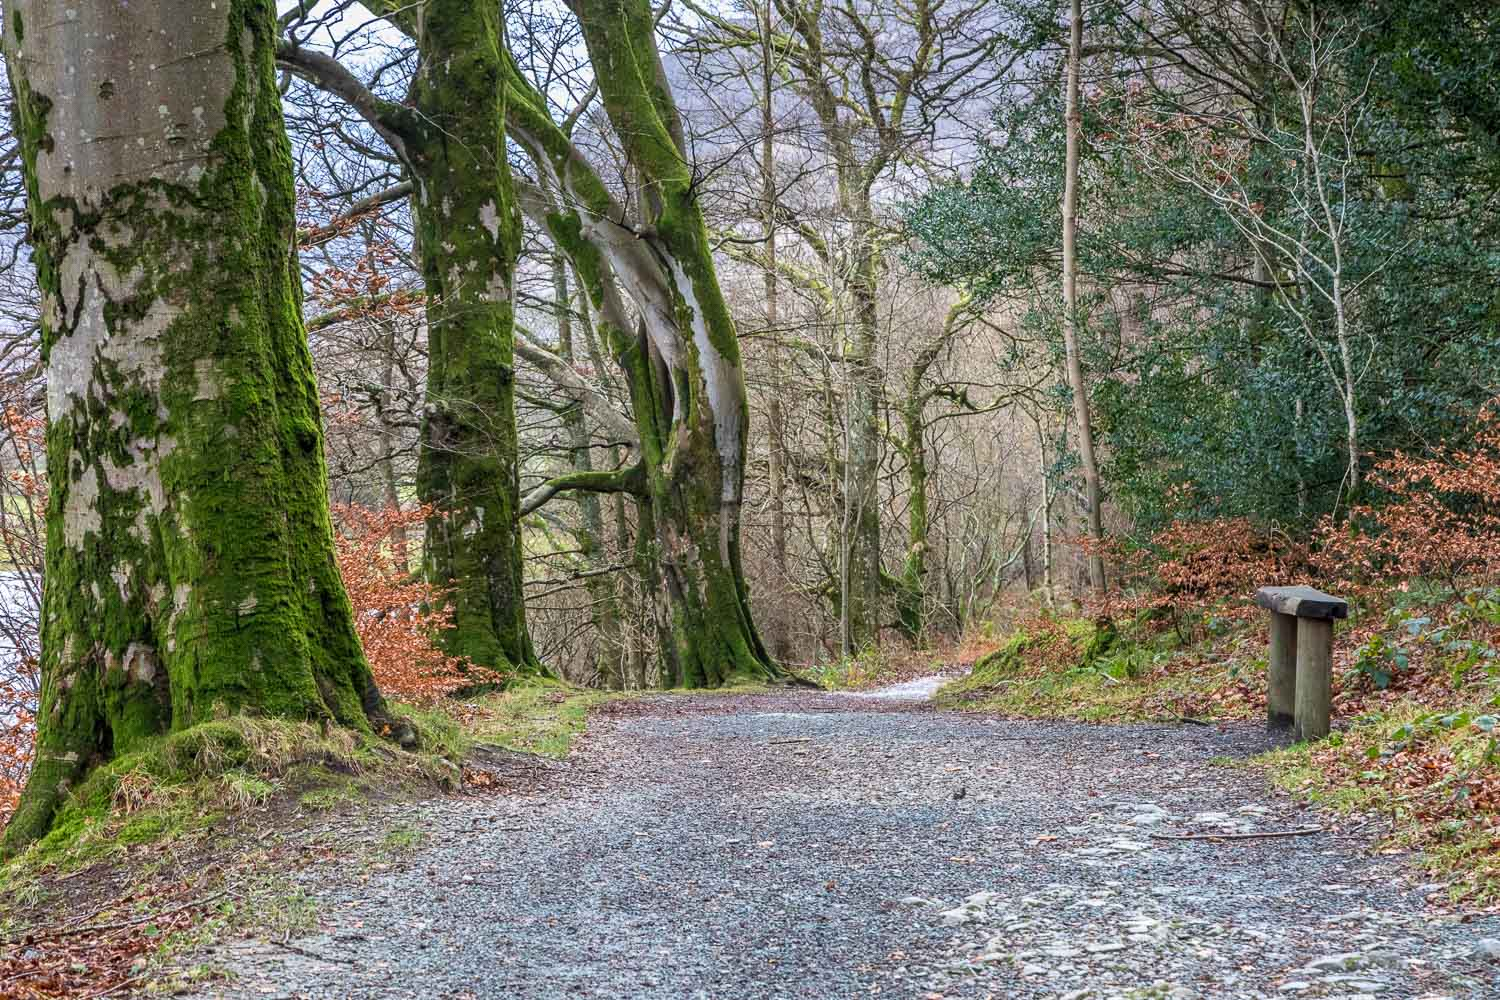 Loweswater-25-44